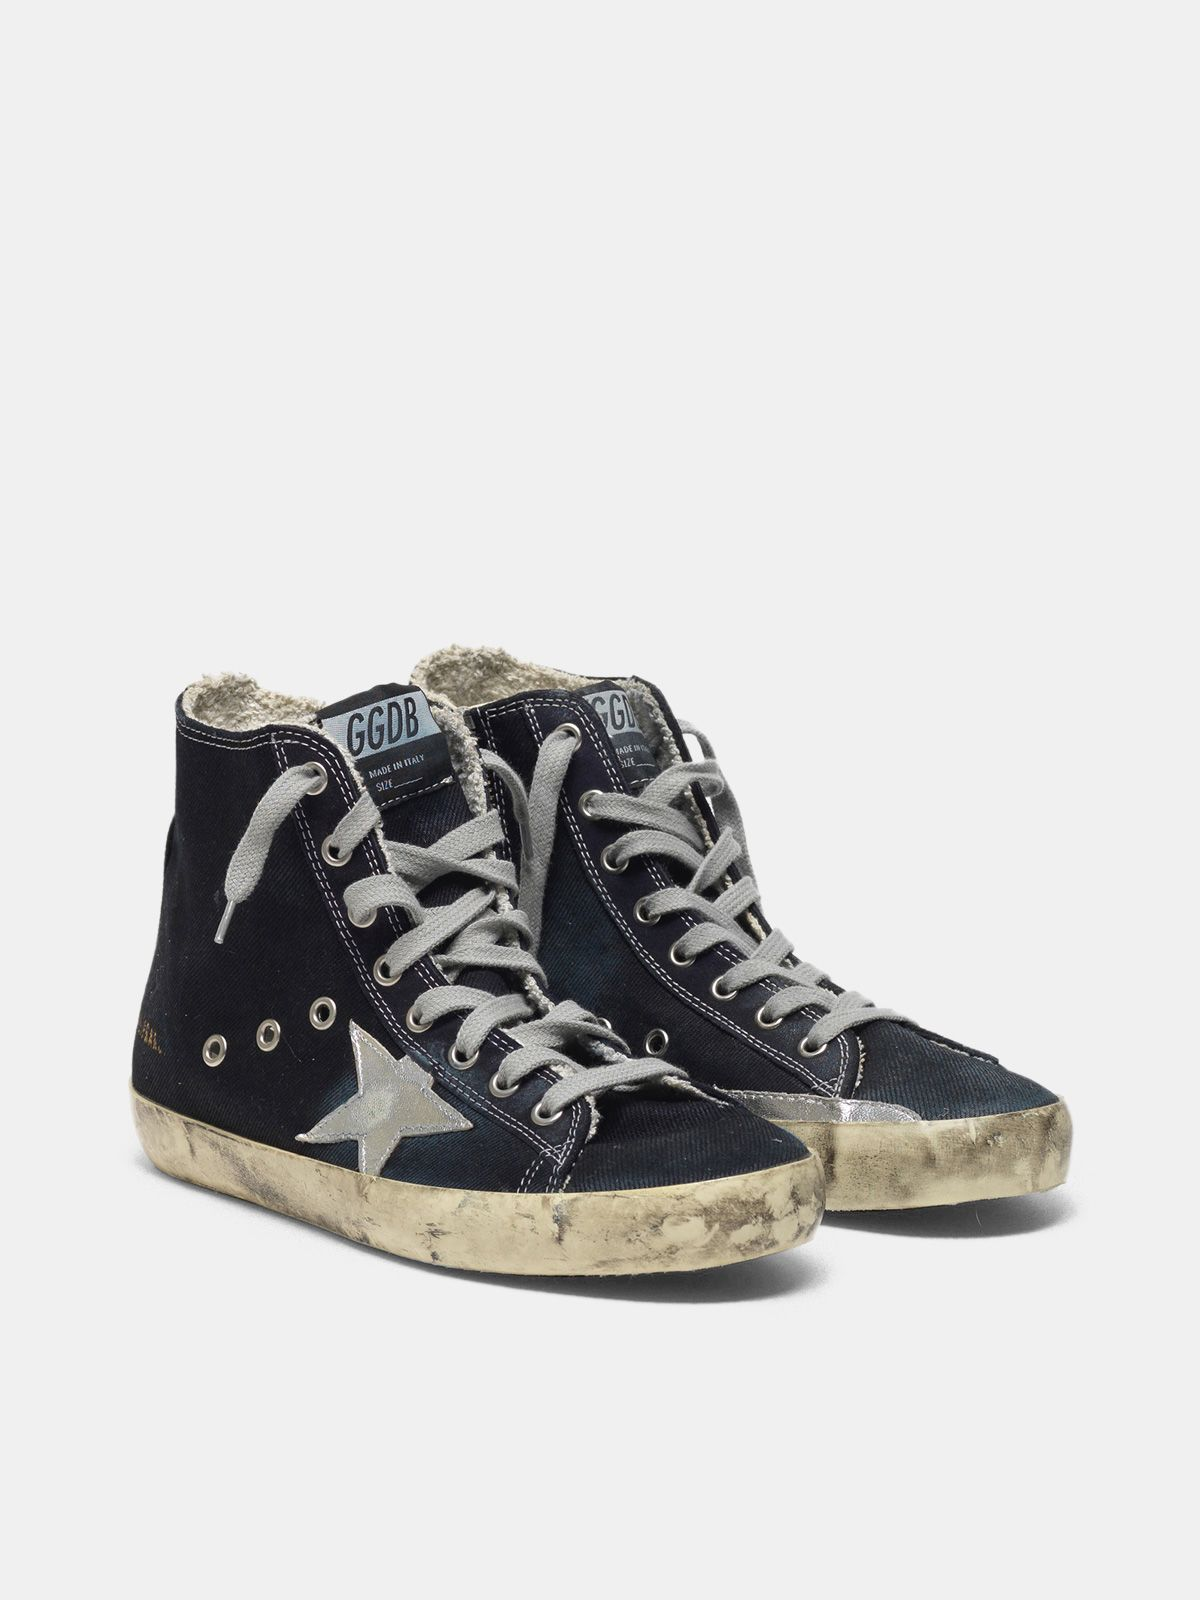 Golden Goose - Sneakers Francy in canvas con stella laminata in